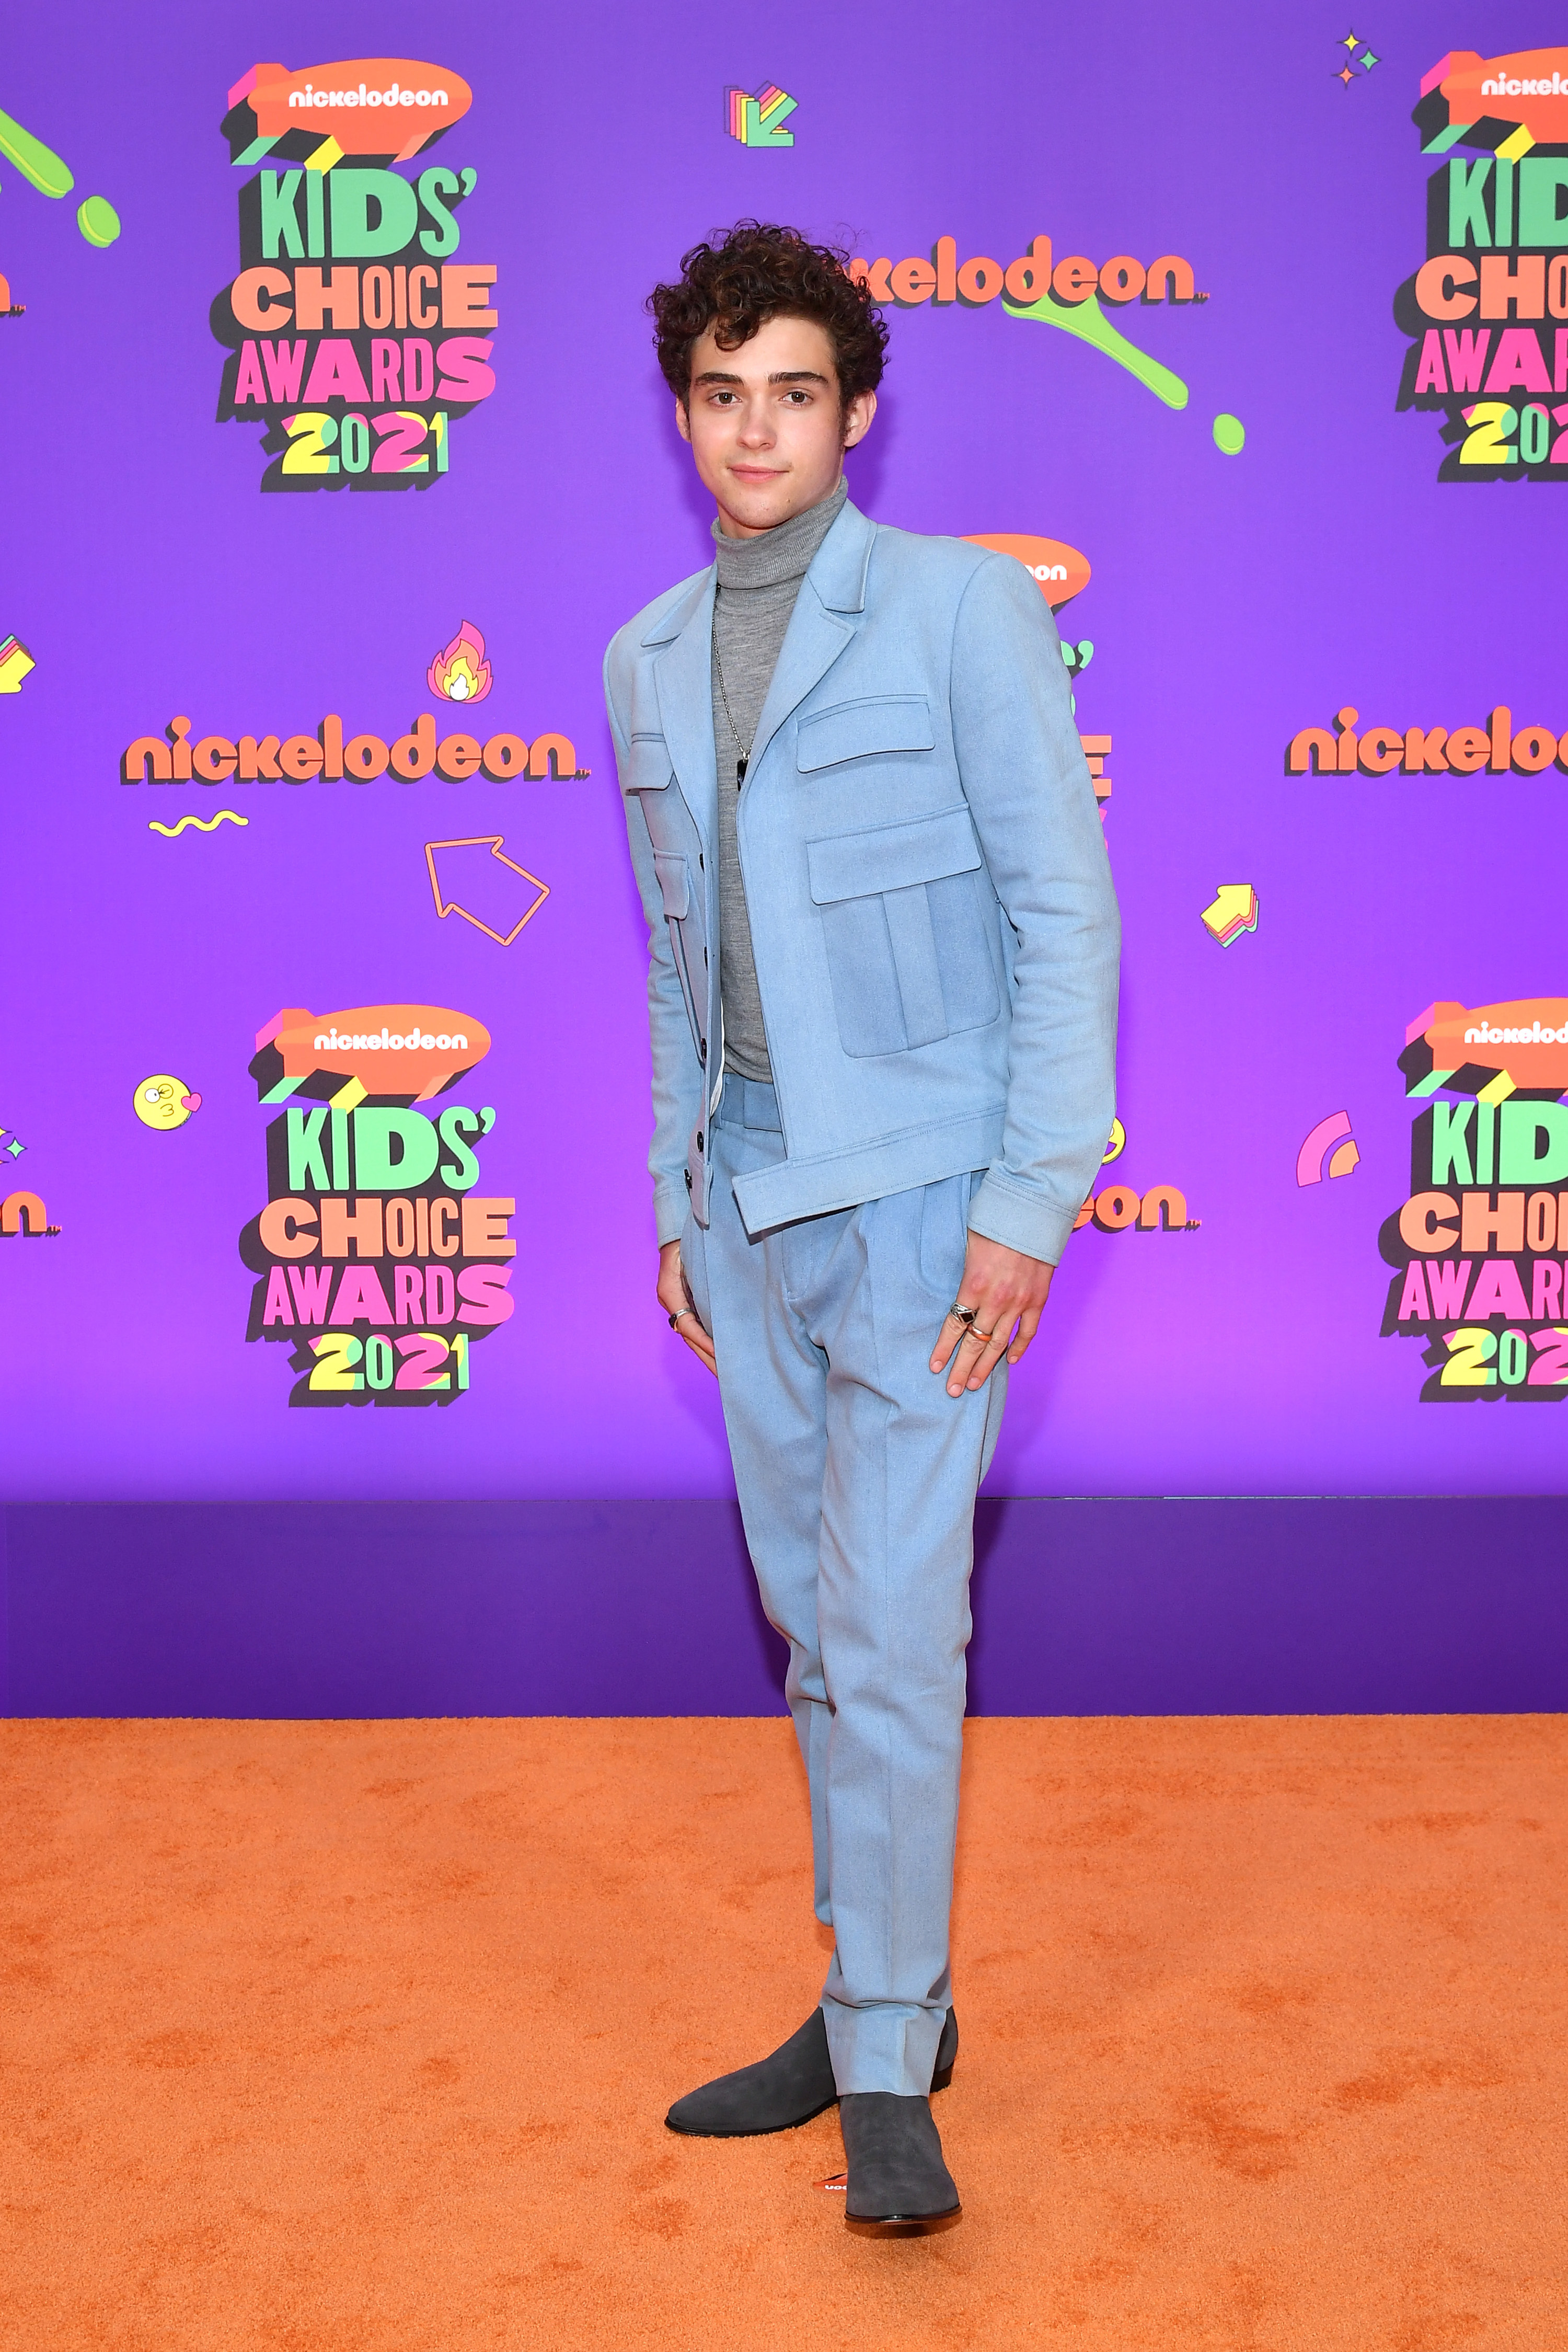 Joshua in a powder blue suit pants with a modern jacket with large pockets